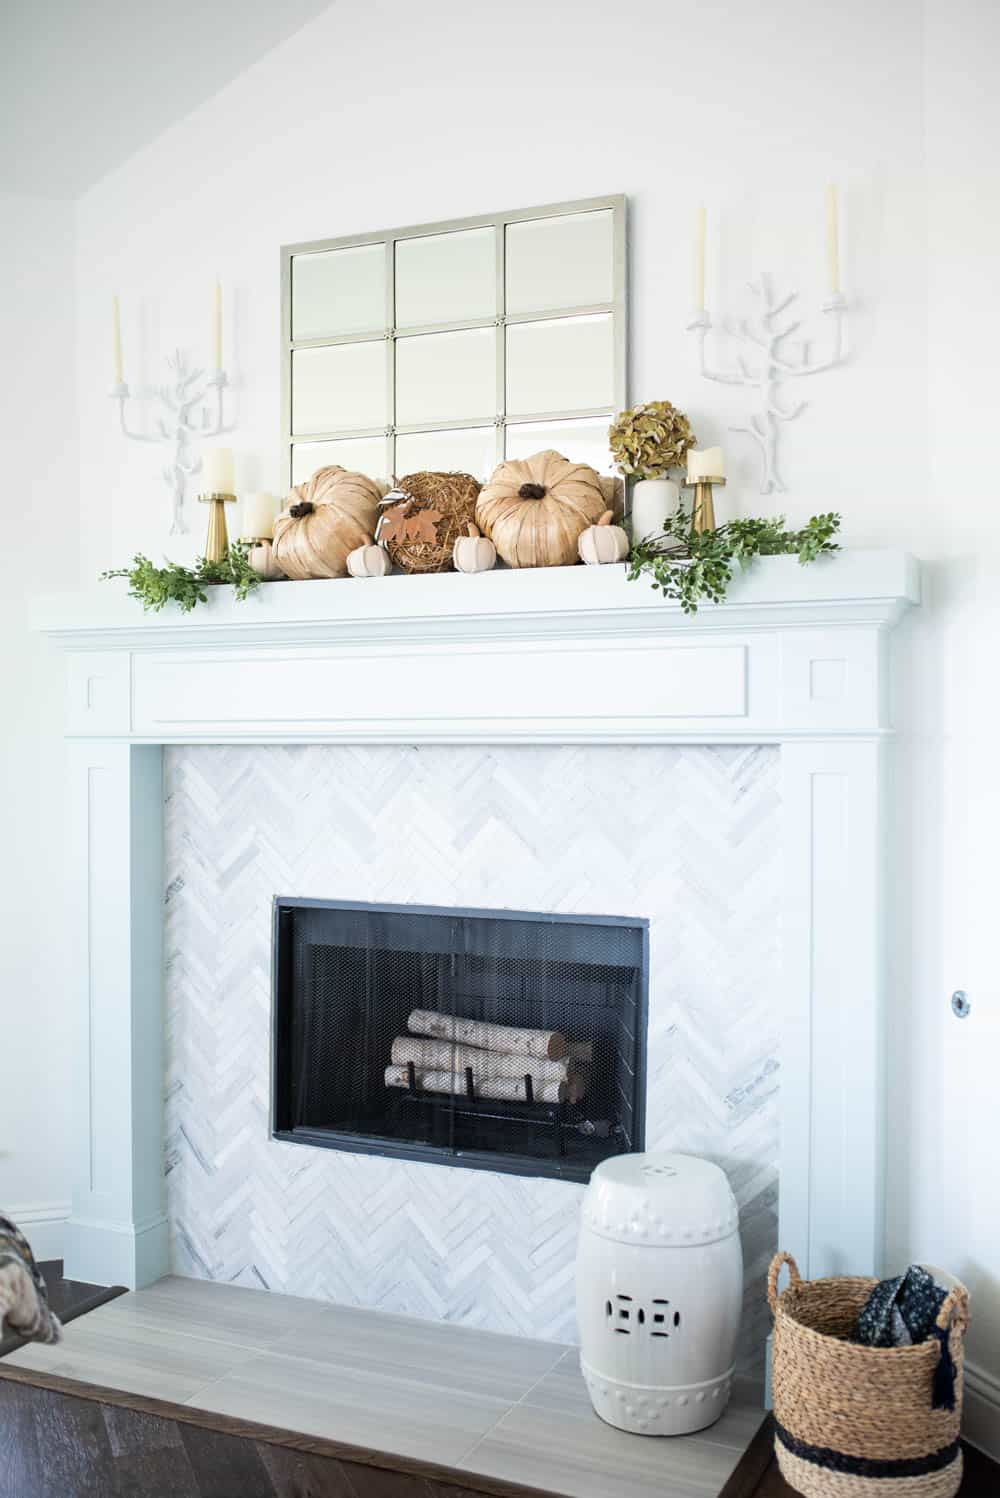 25 Inspiring Fall Mantel Decorating Ideas | A Blissful Nest